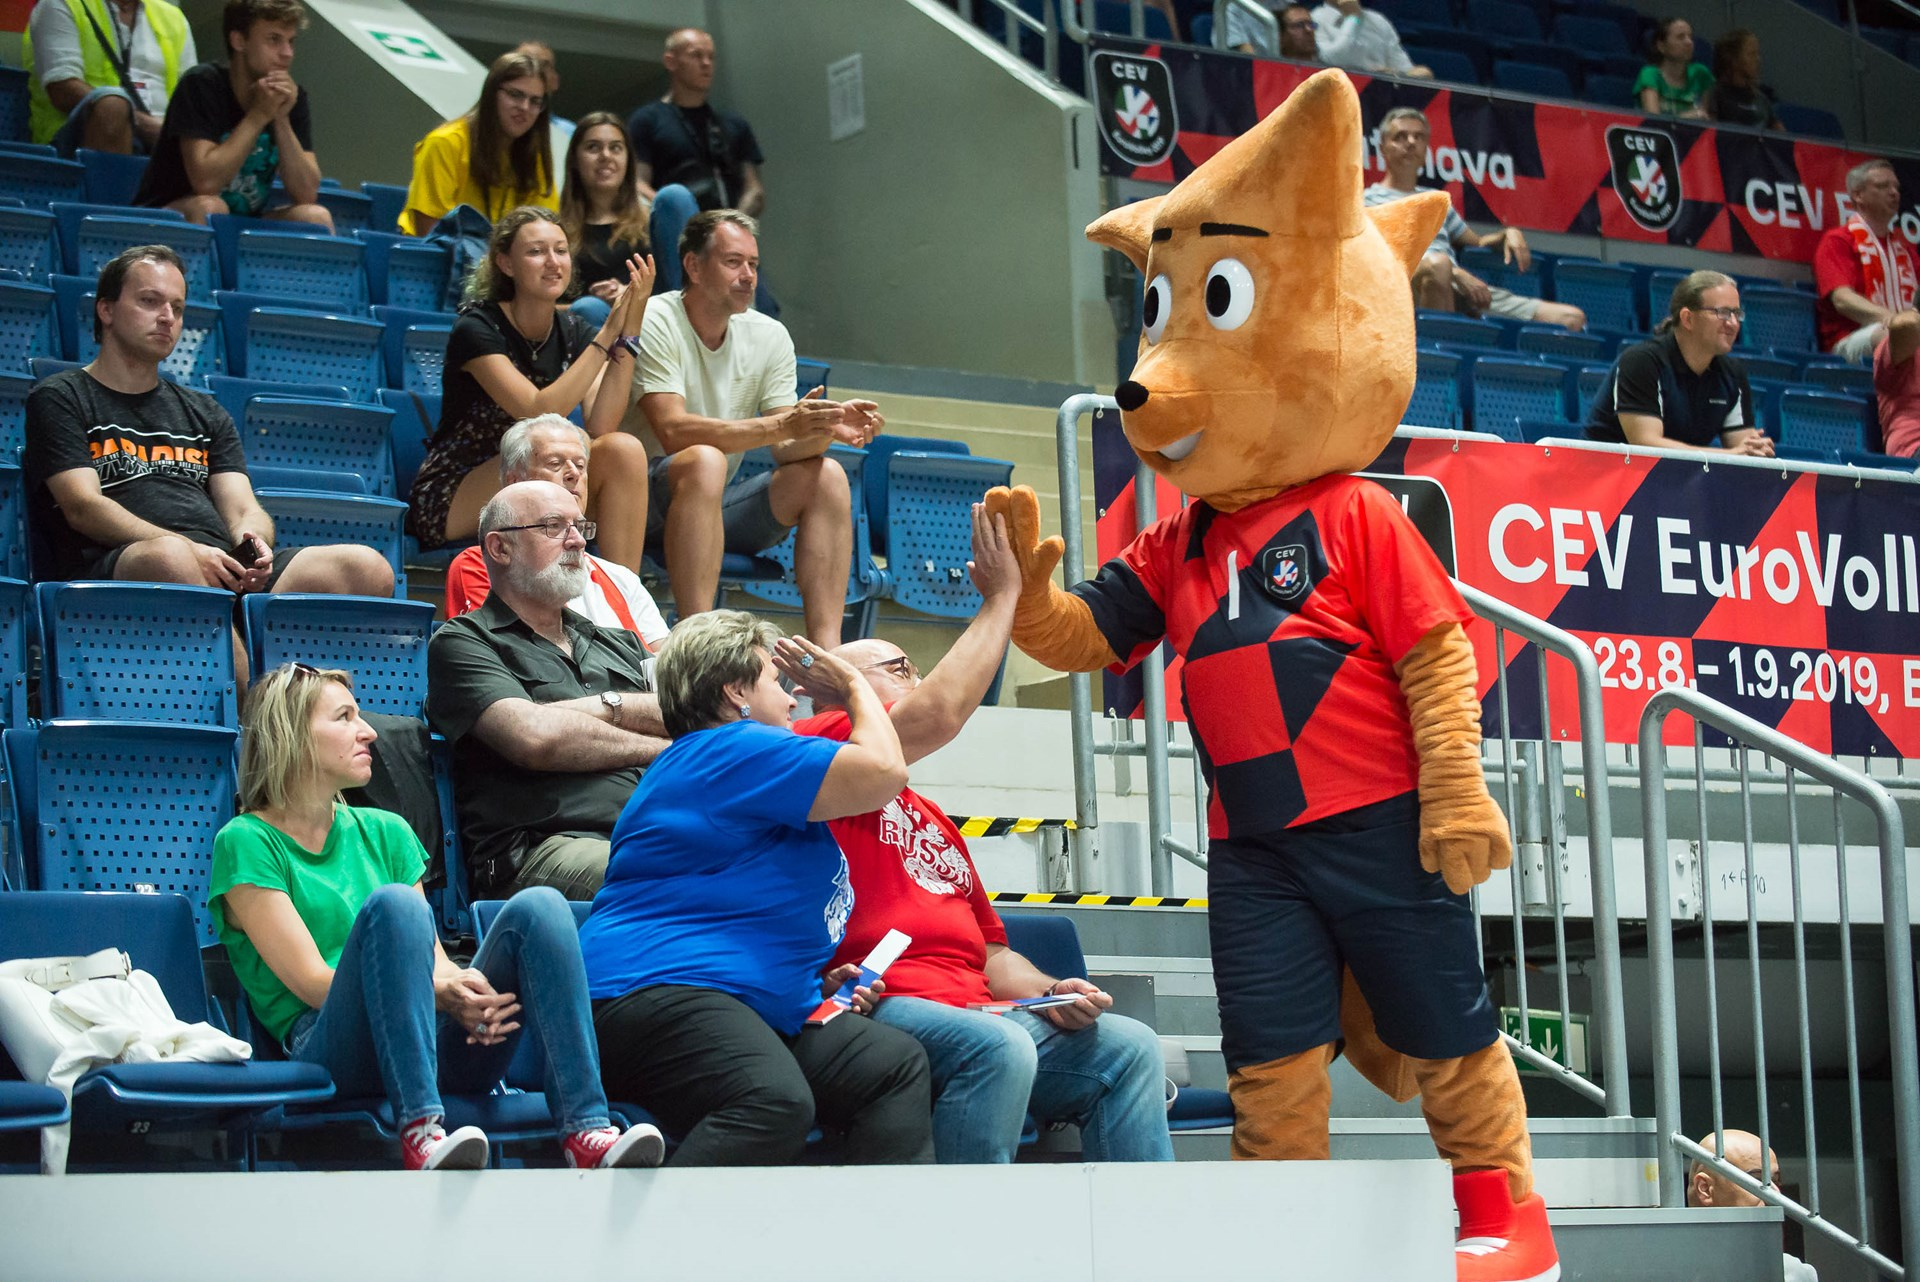 Ace's EuroVolley diary part 1 | EuroVolley